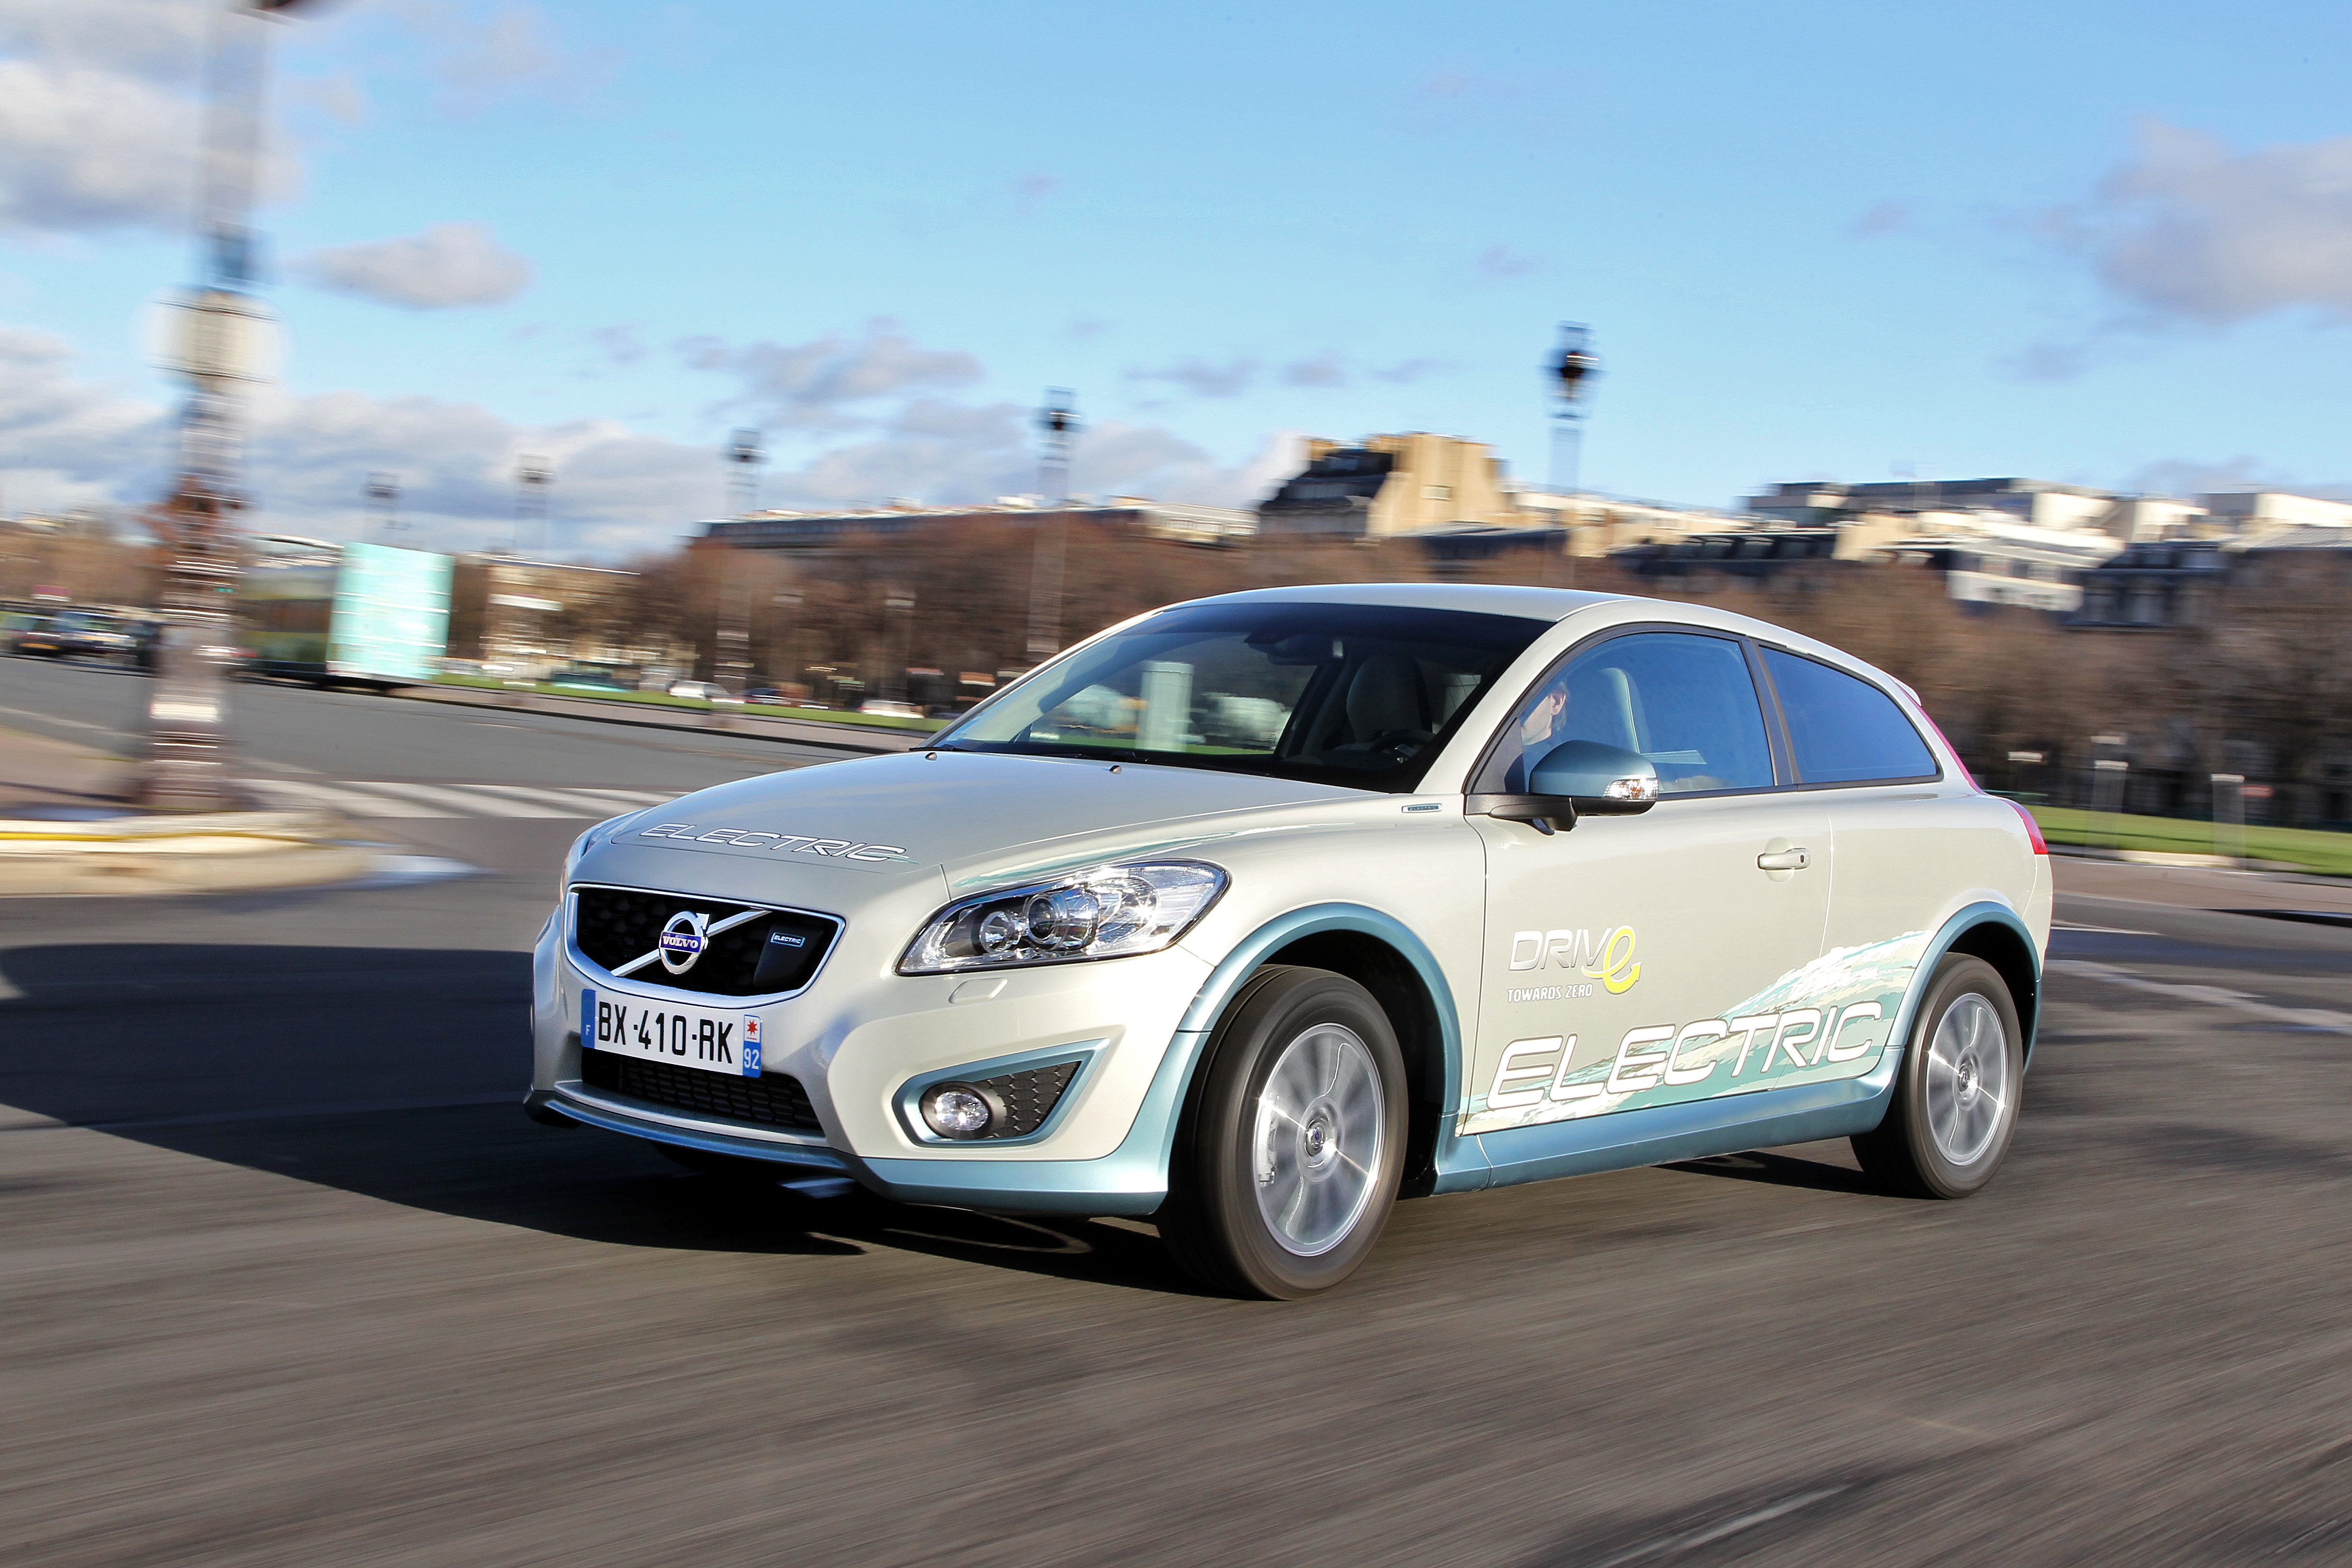 Volvo C30 électrique : un premier contact engageant